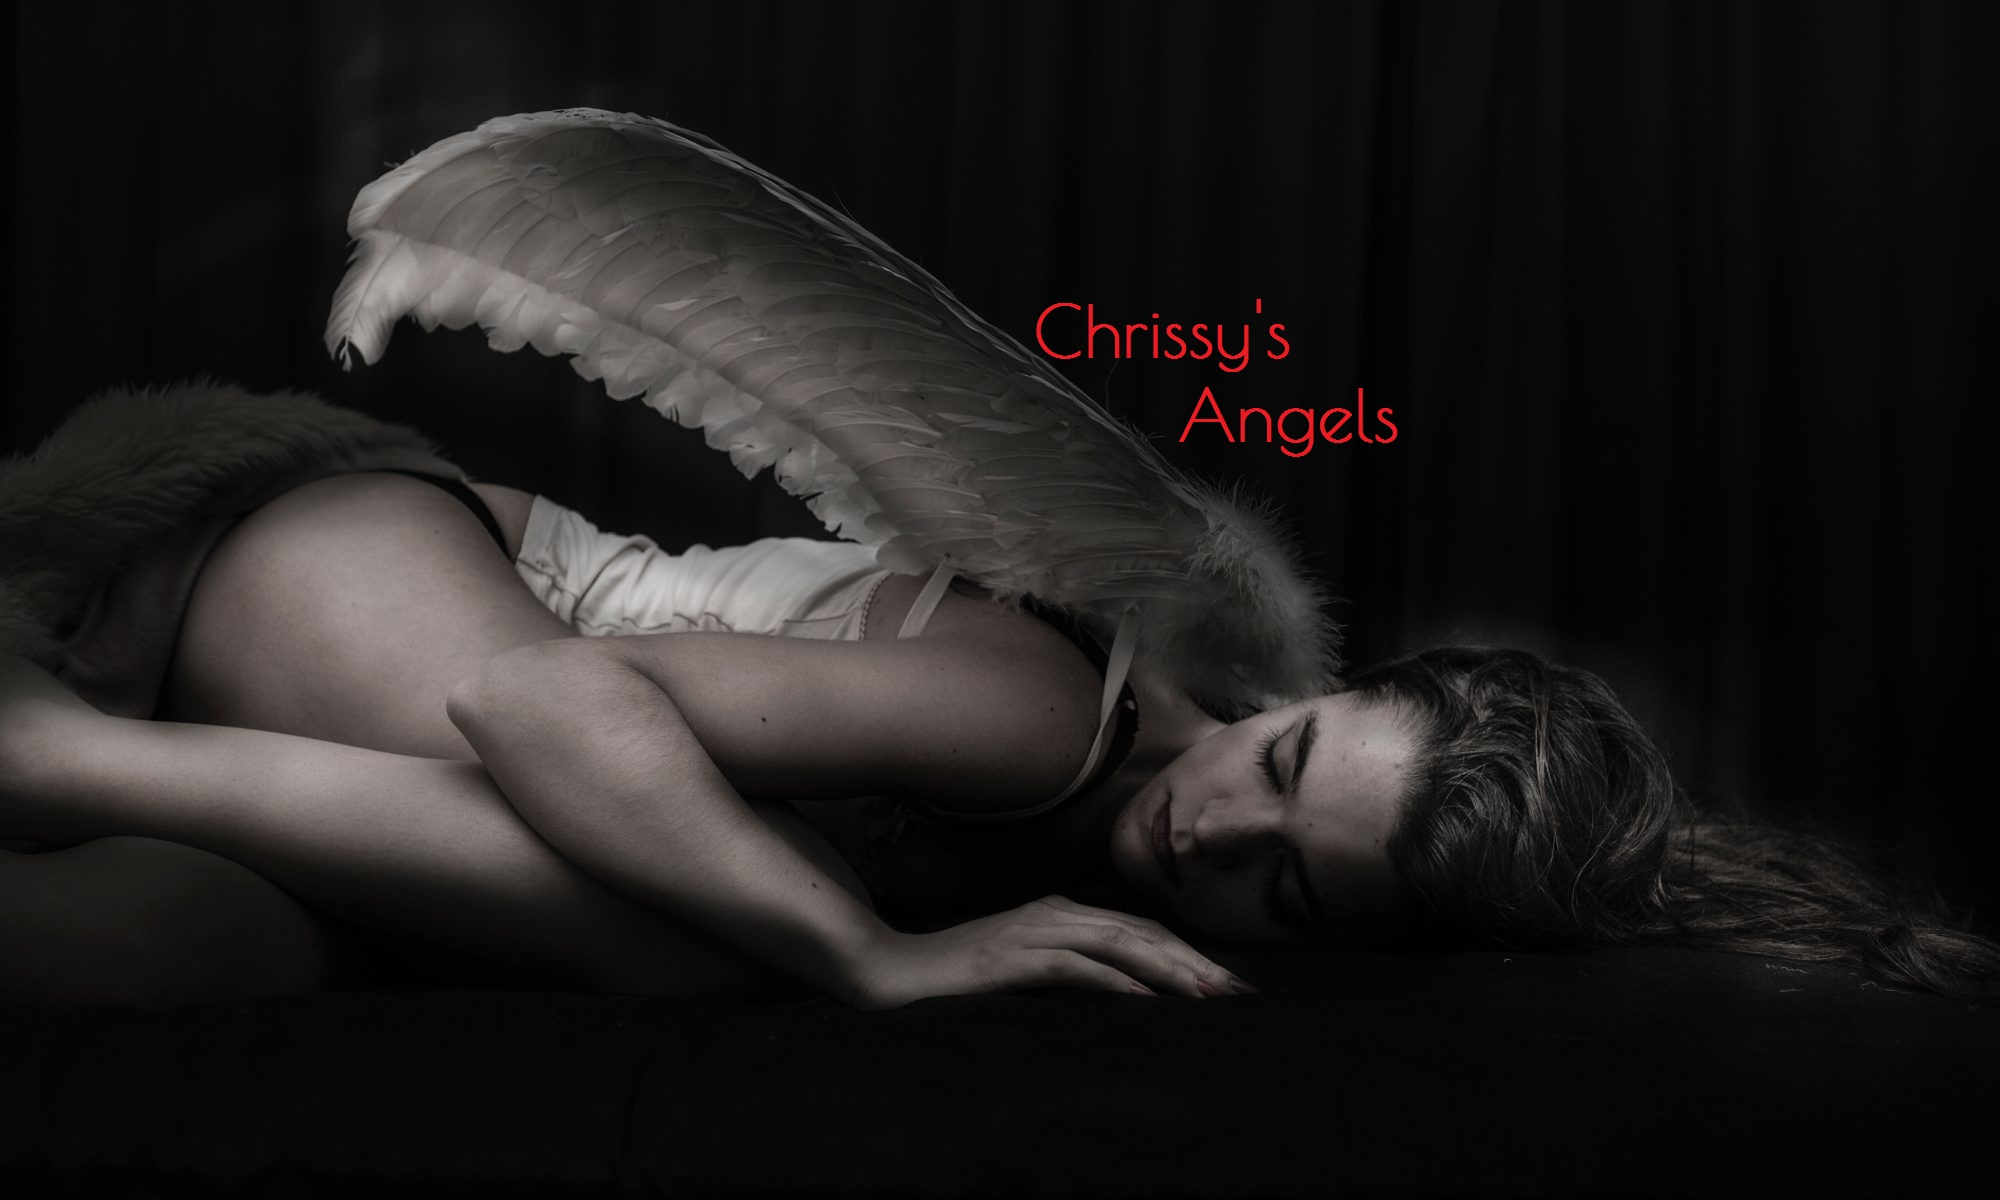 Chrissy's Angels